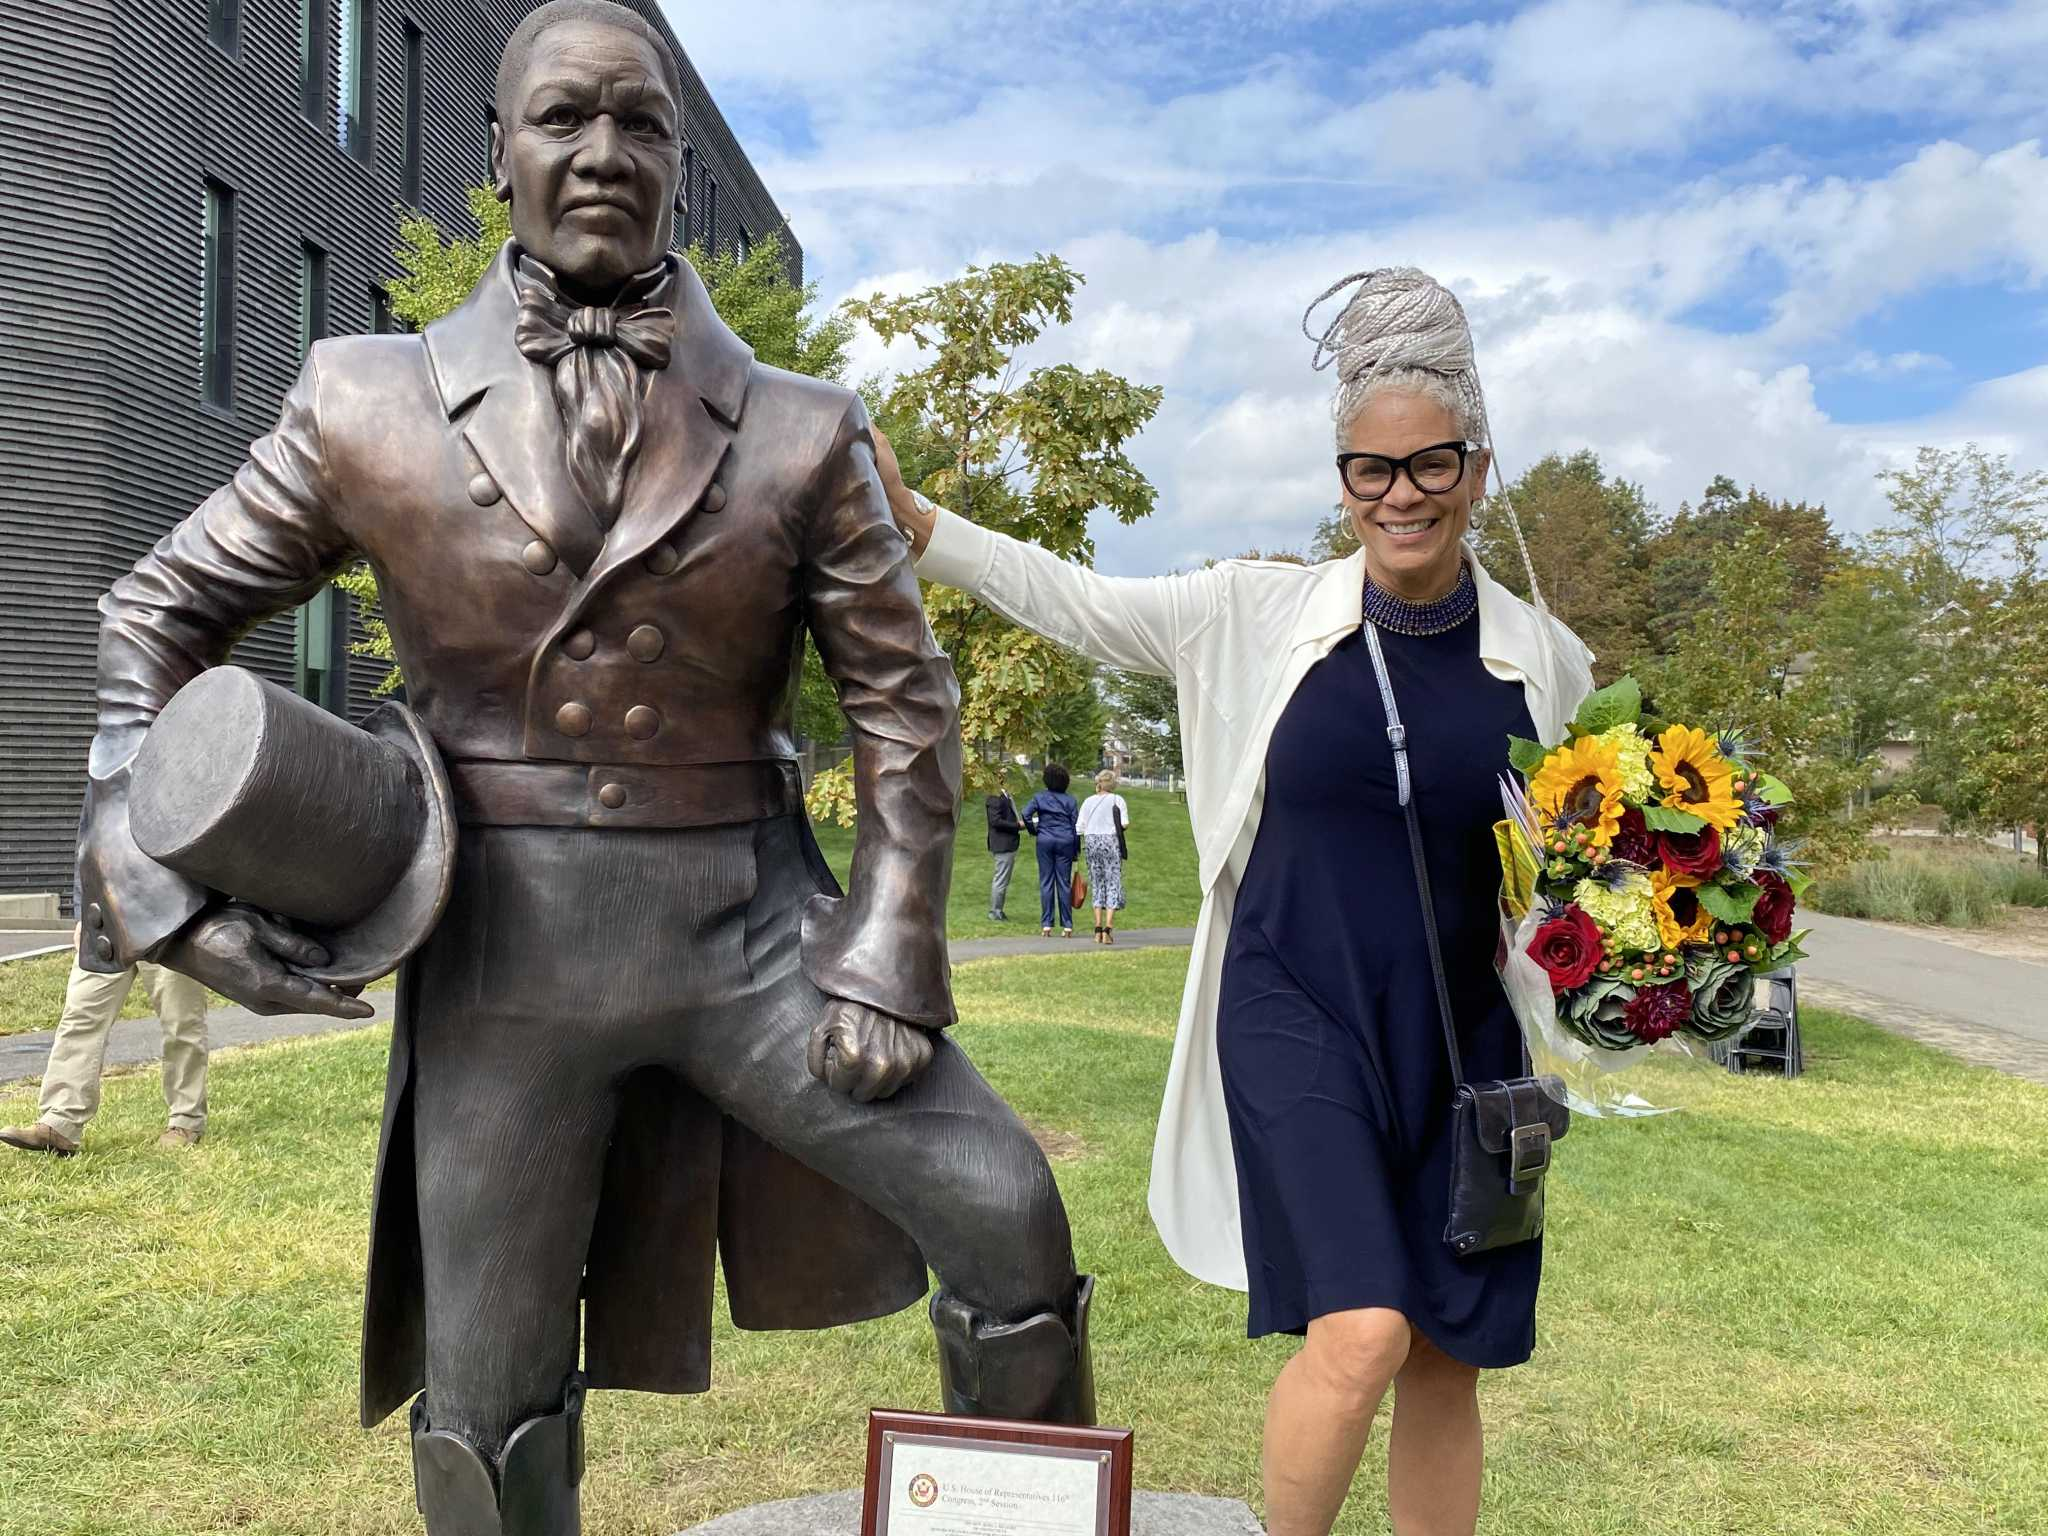 New Haven mayor offers apology to 19th century treatment of former slave, declares William Lanson Day